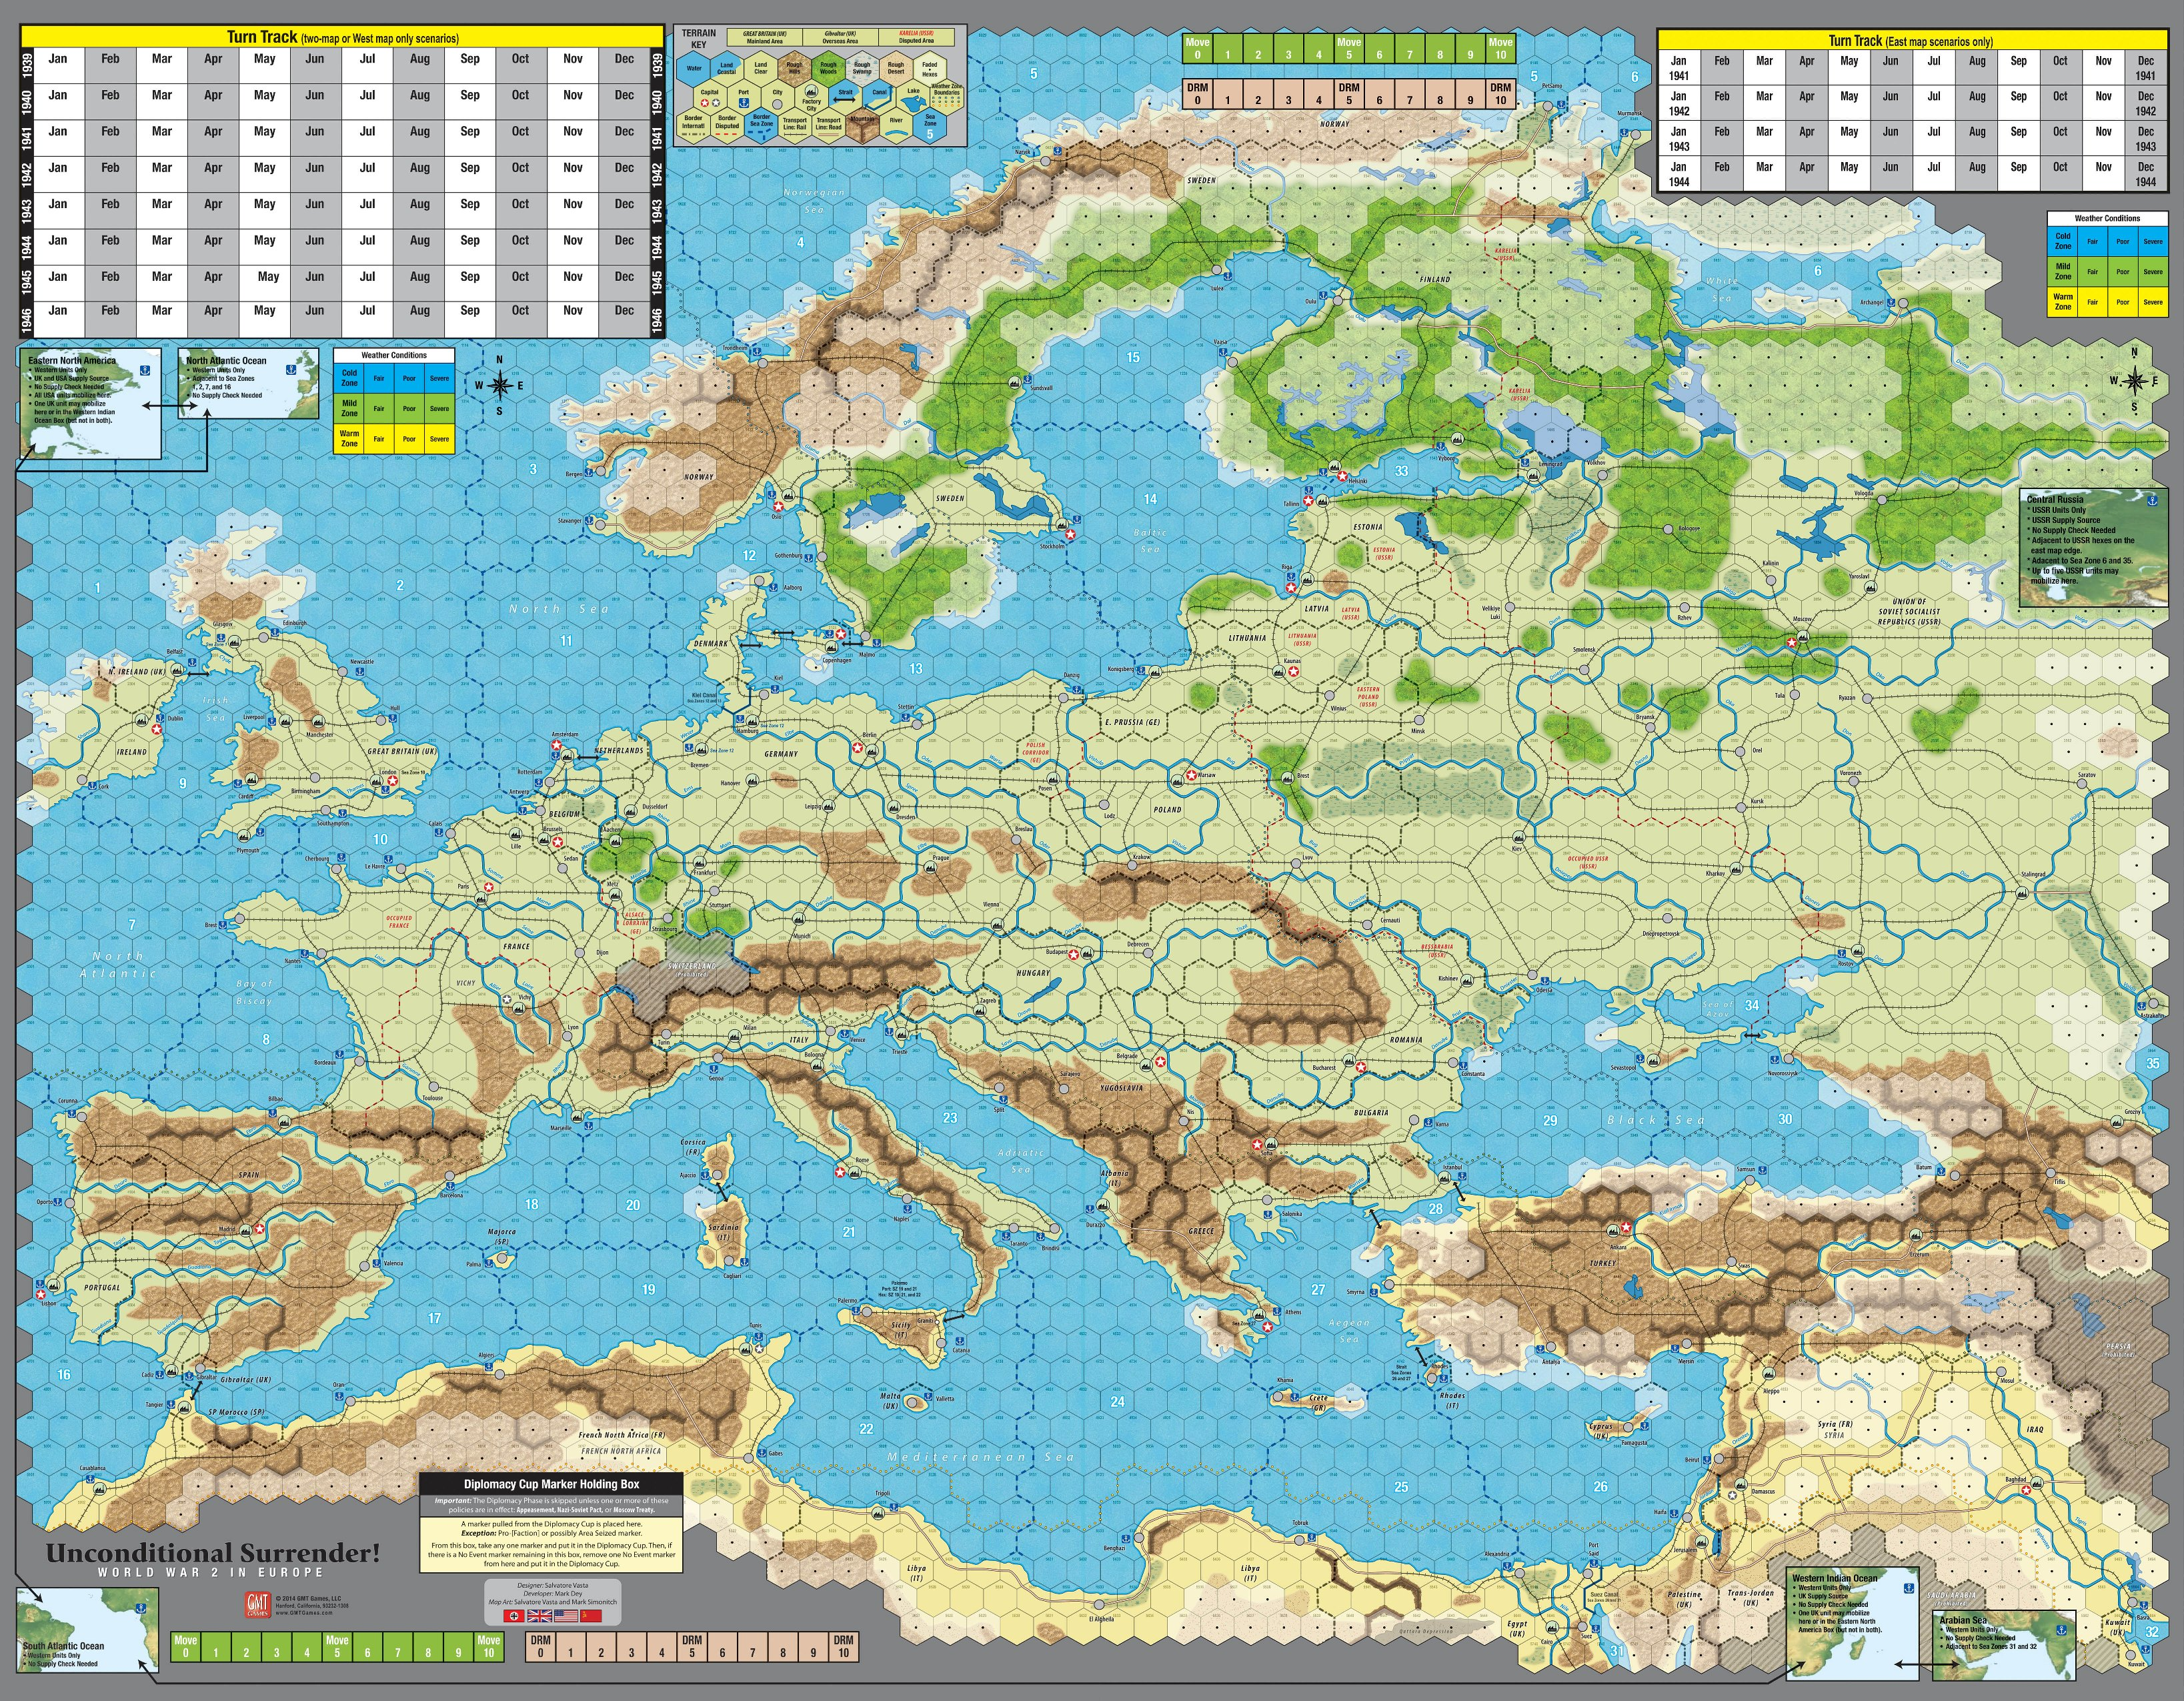 Gmt games unconditional surrender 2nd printing map preview gumiabroncs Images